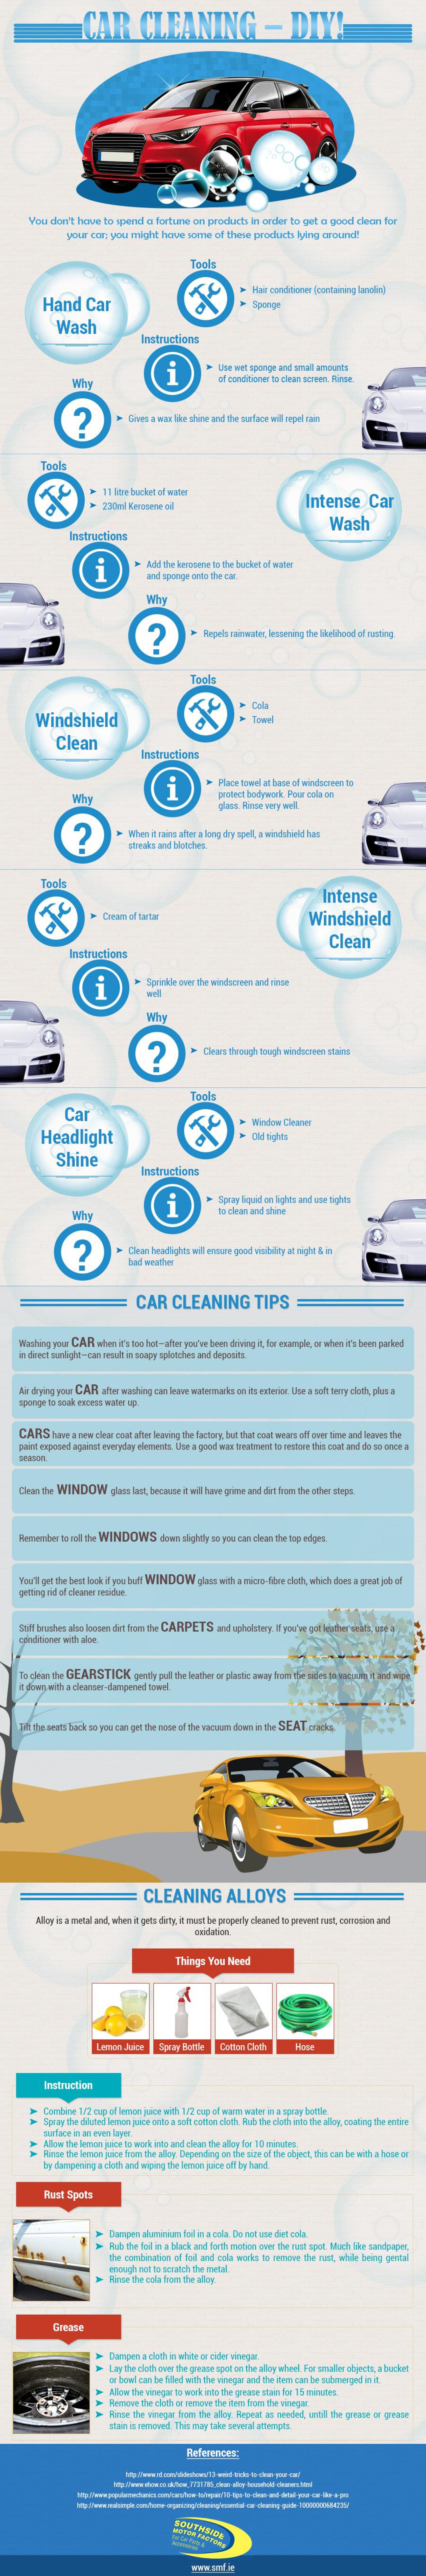 Car Cleaning - DIY Infographic